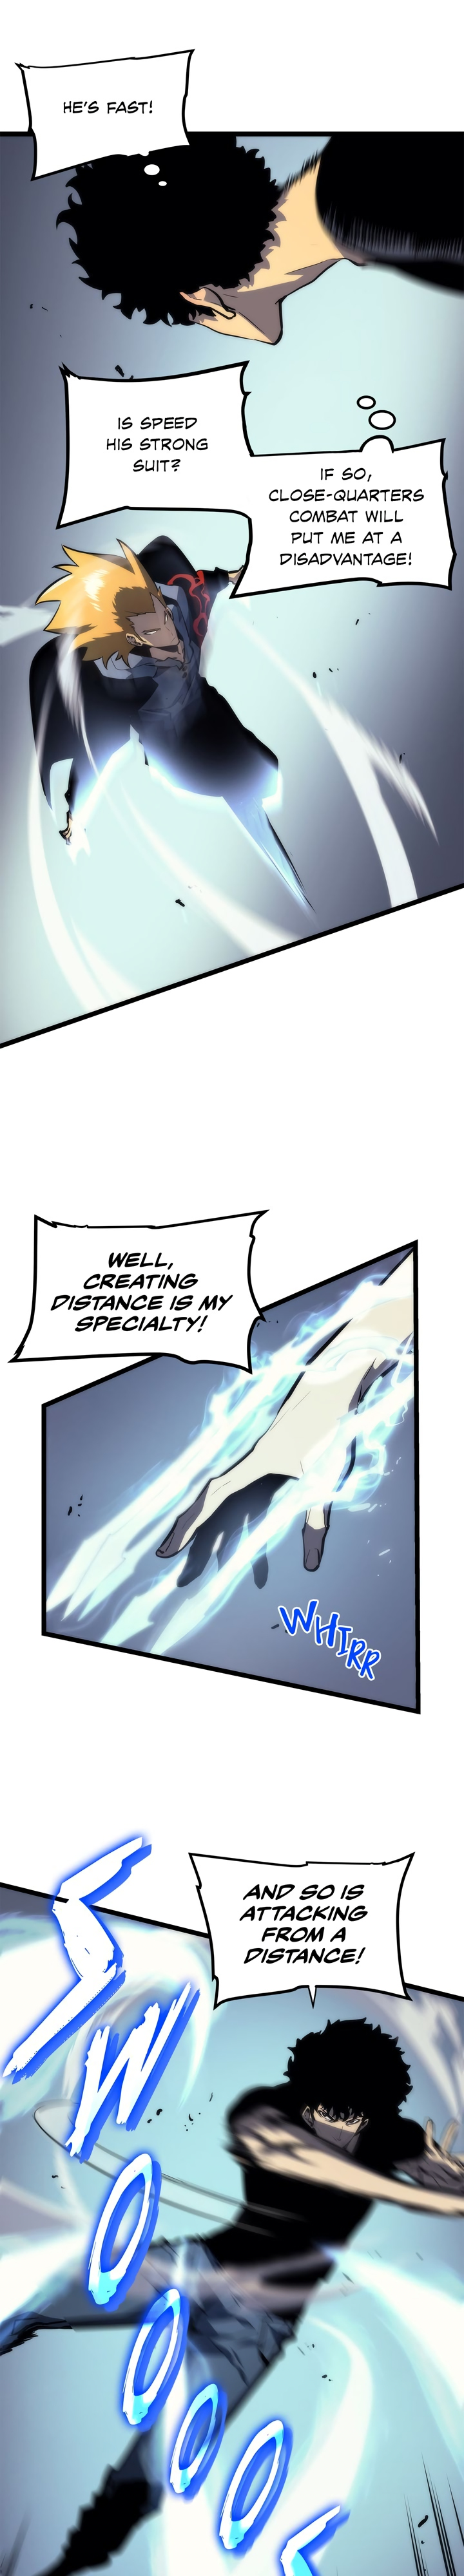 Solo Leveling, Chapter 92 image 007